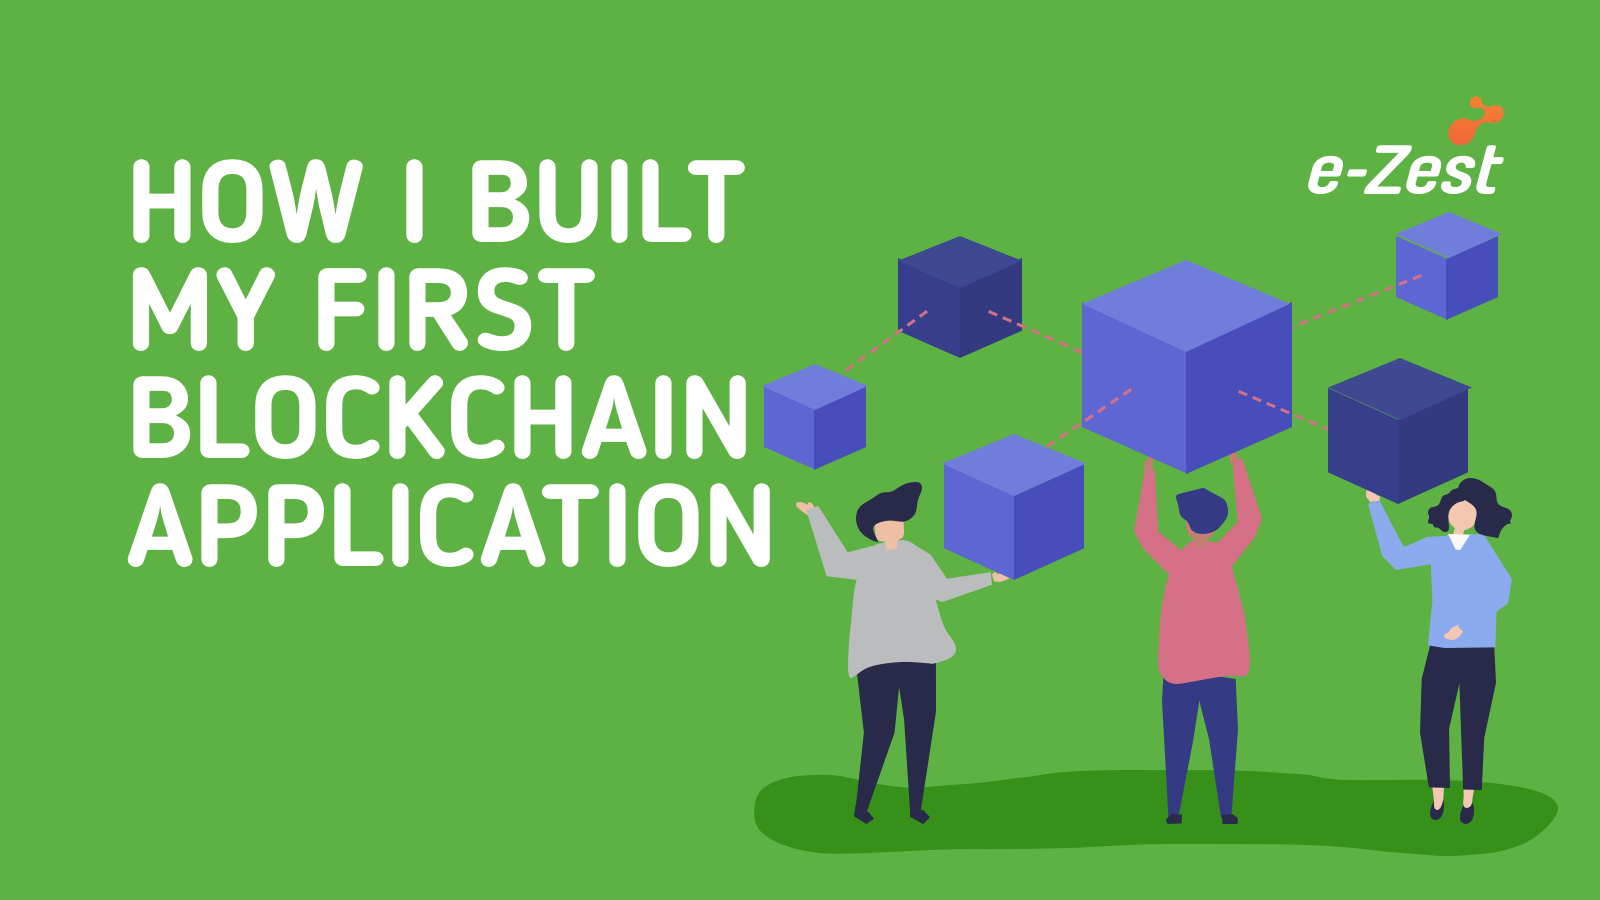 How I built my first Blockchain application